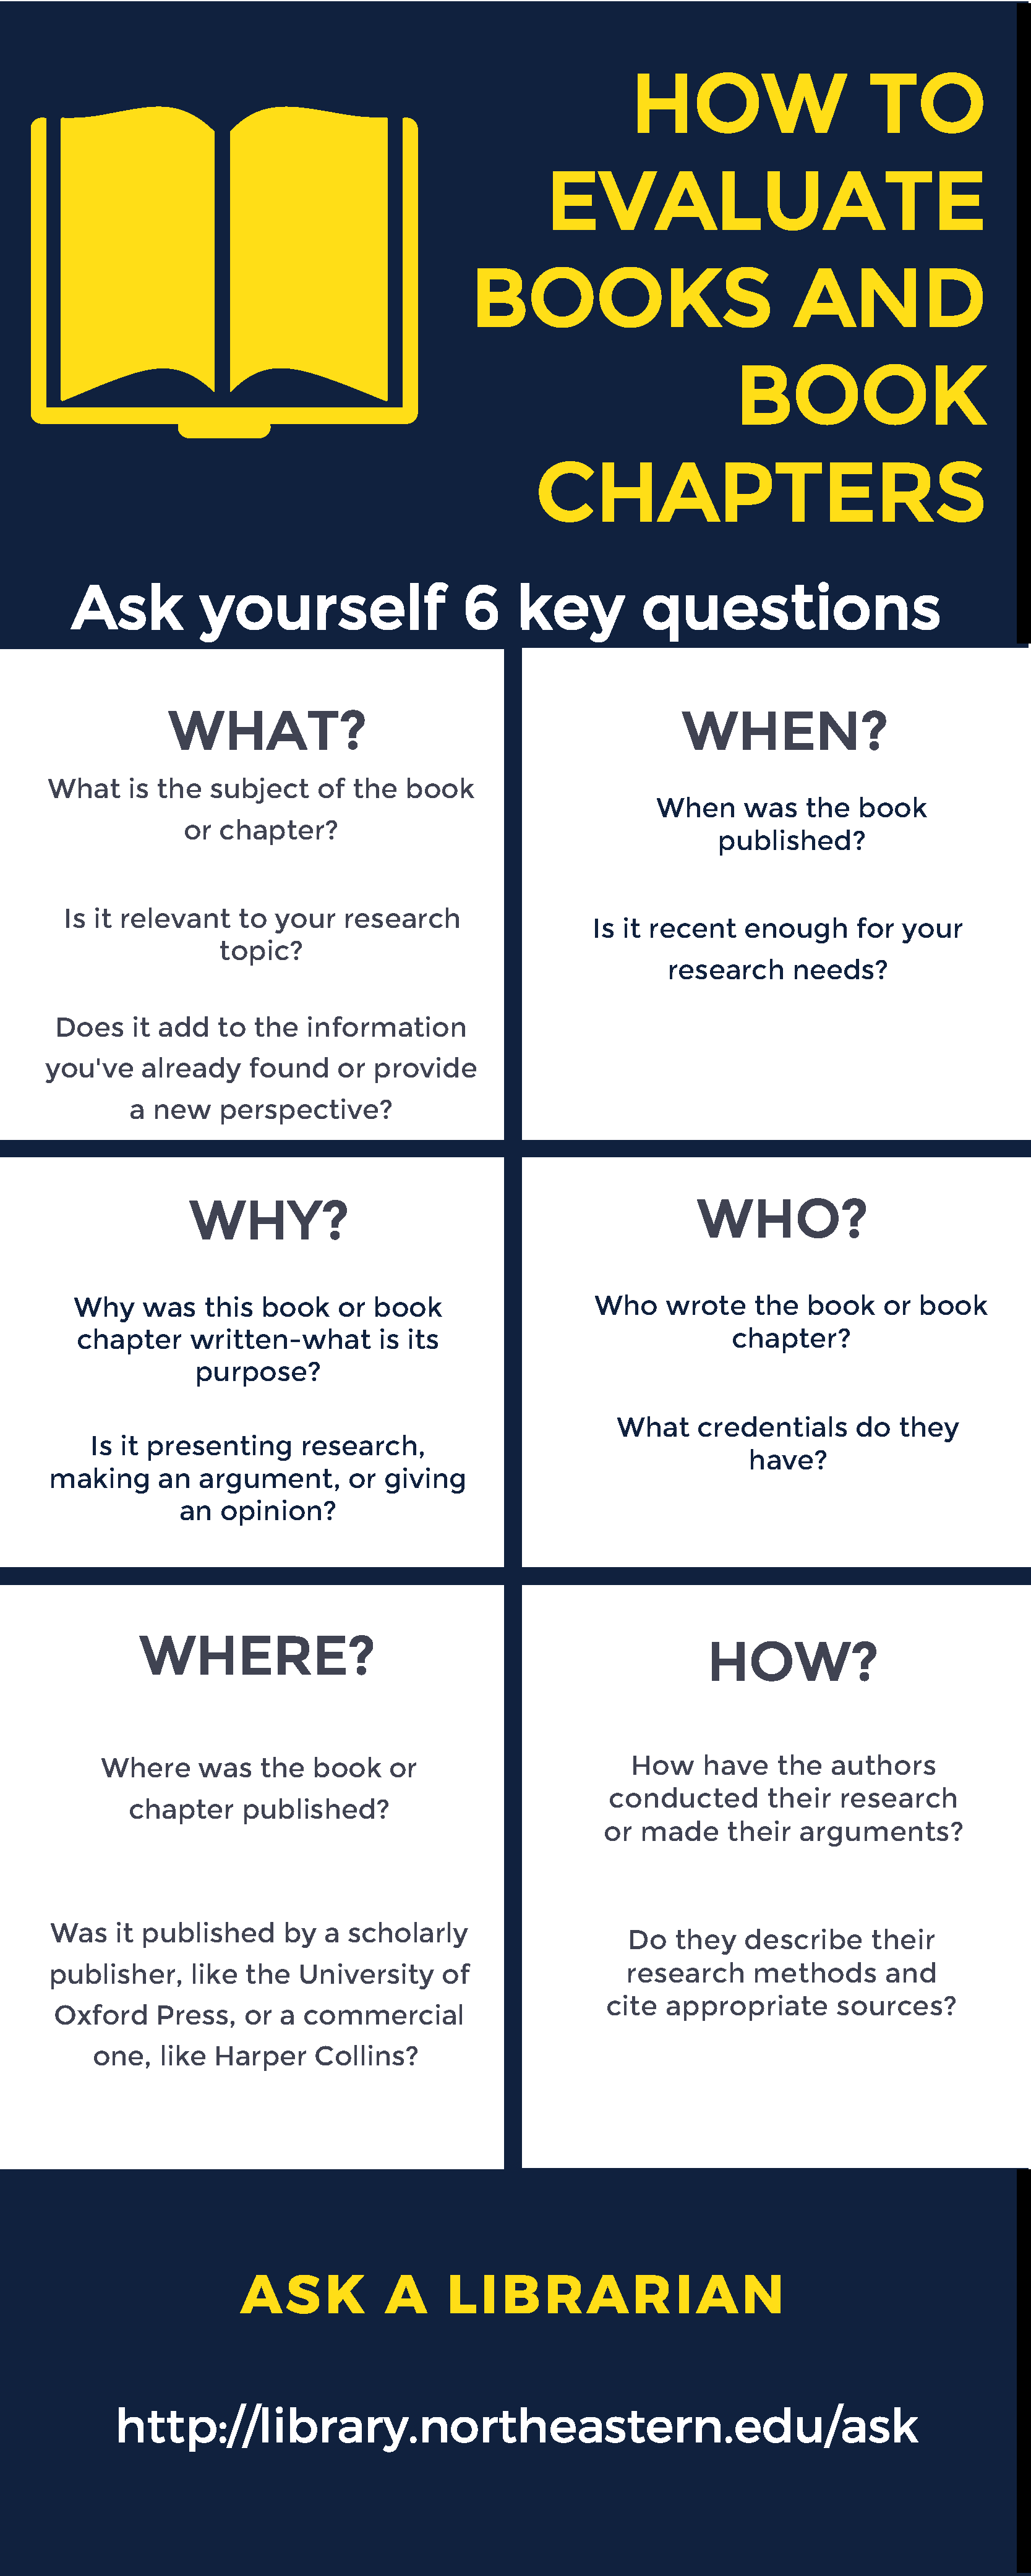 How to evaluate books and book chapters